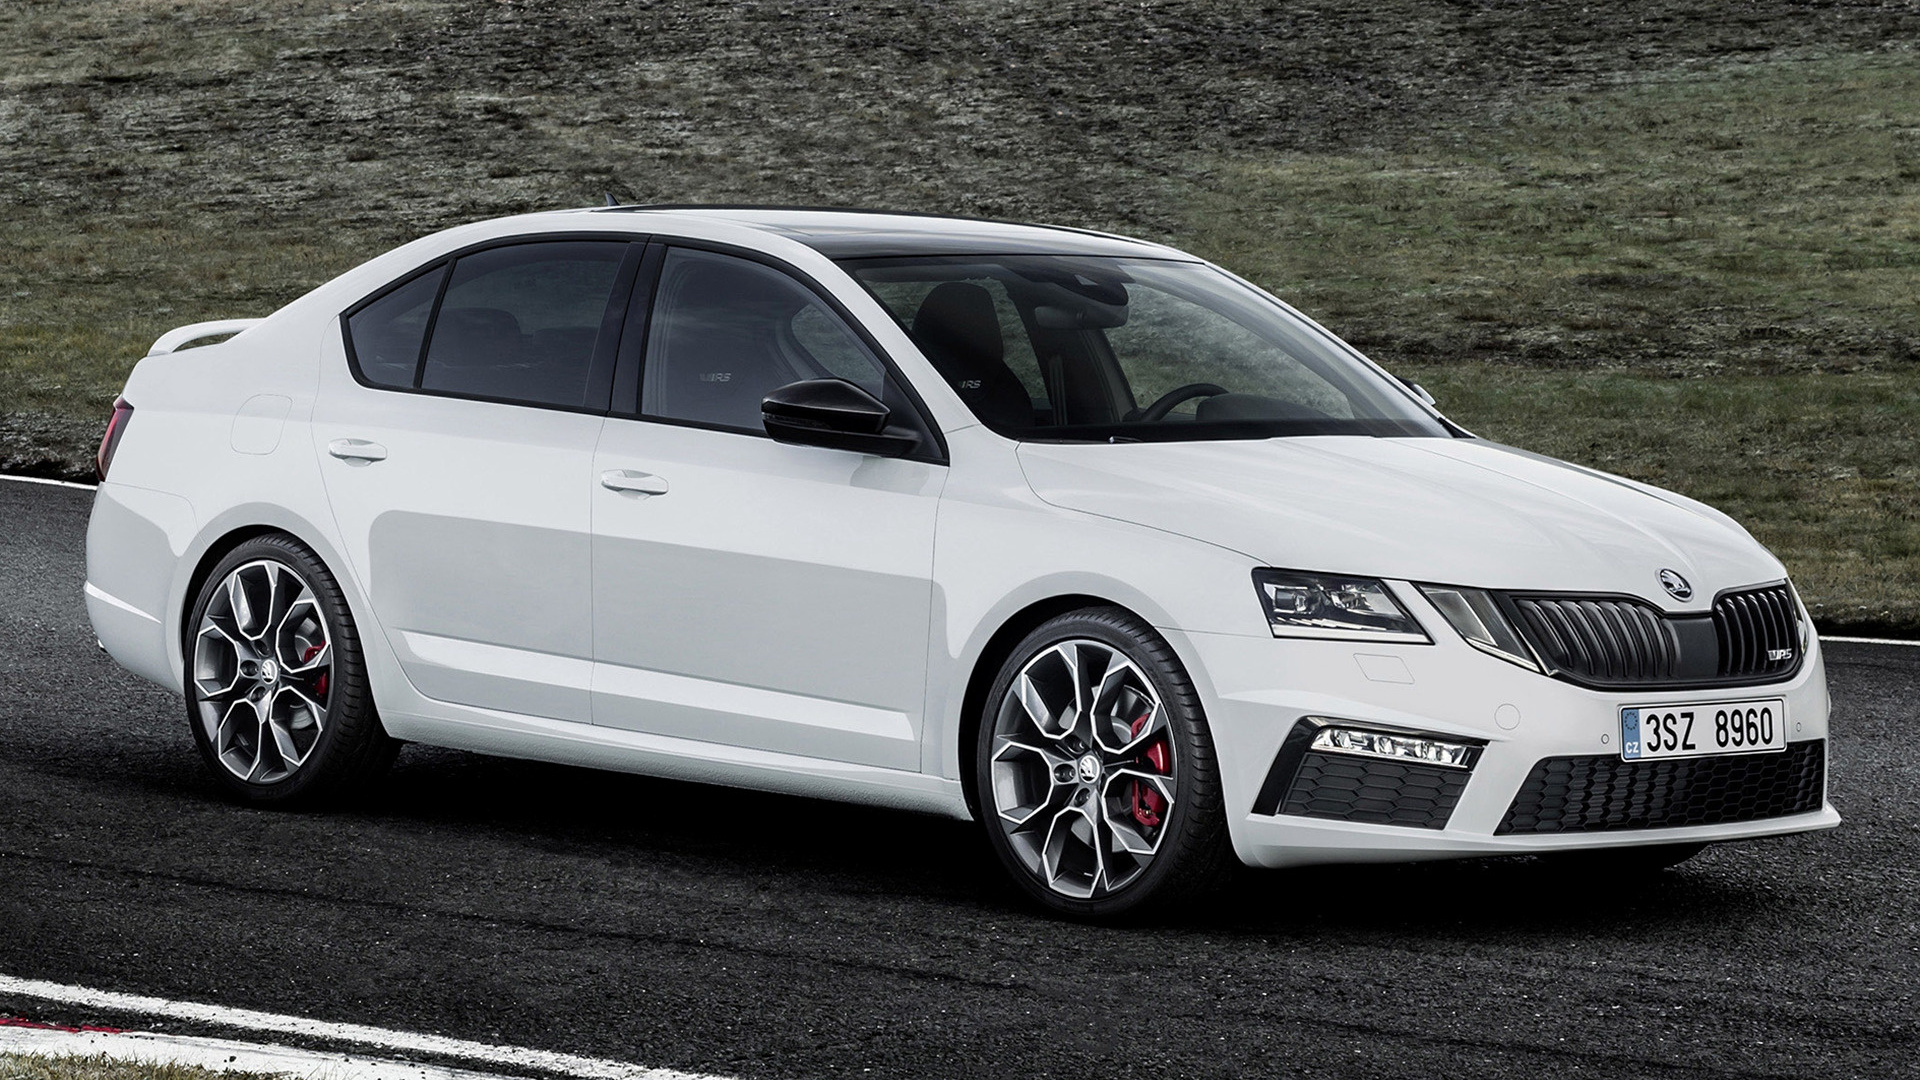 skoda octavia rs 2017 wallpapers and hd images car pixel. Black Bedroom Furniture Sets. Home Design Ideas